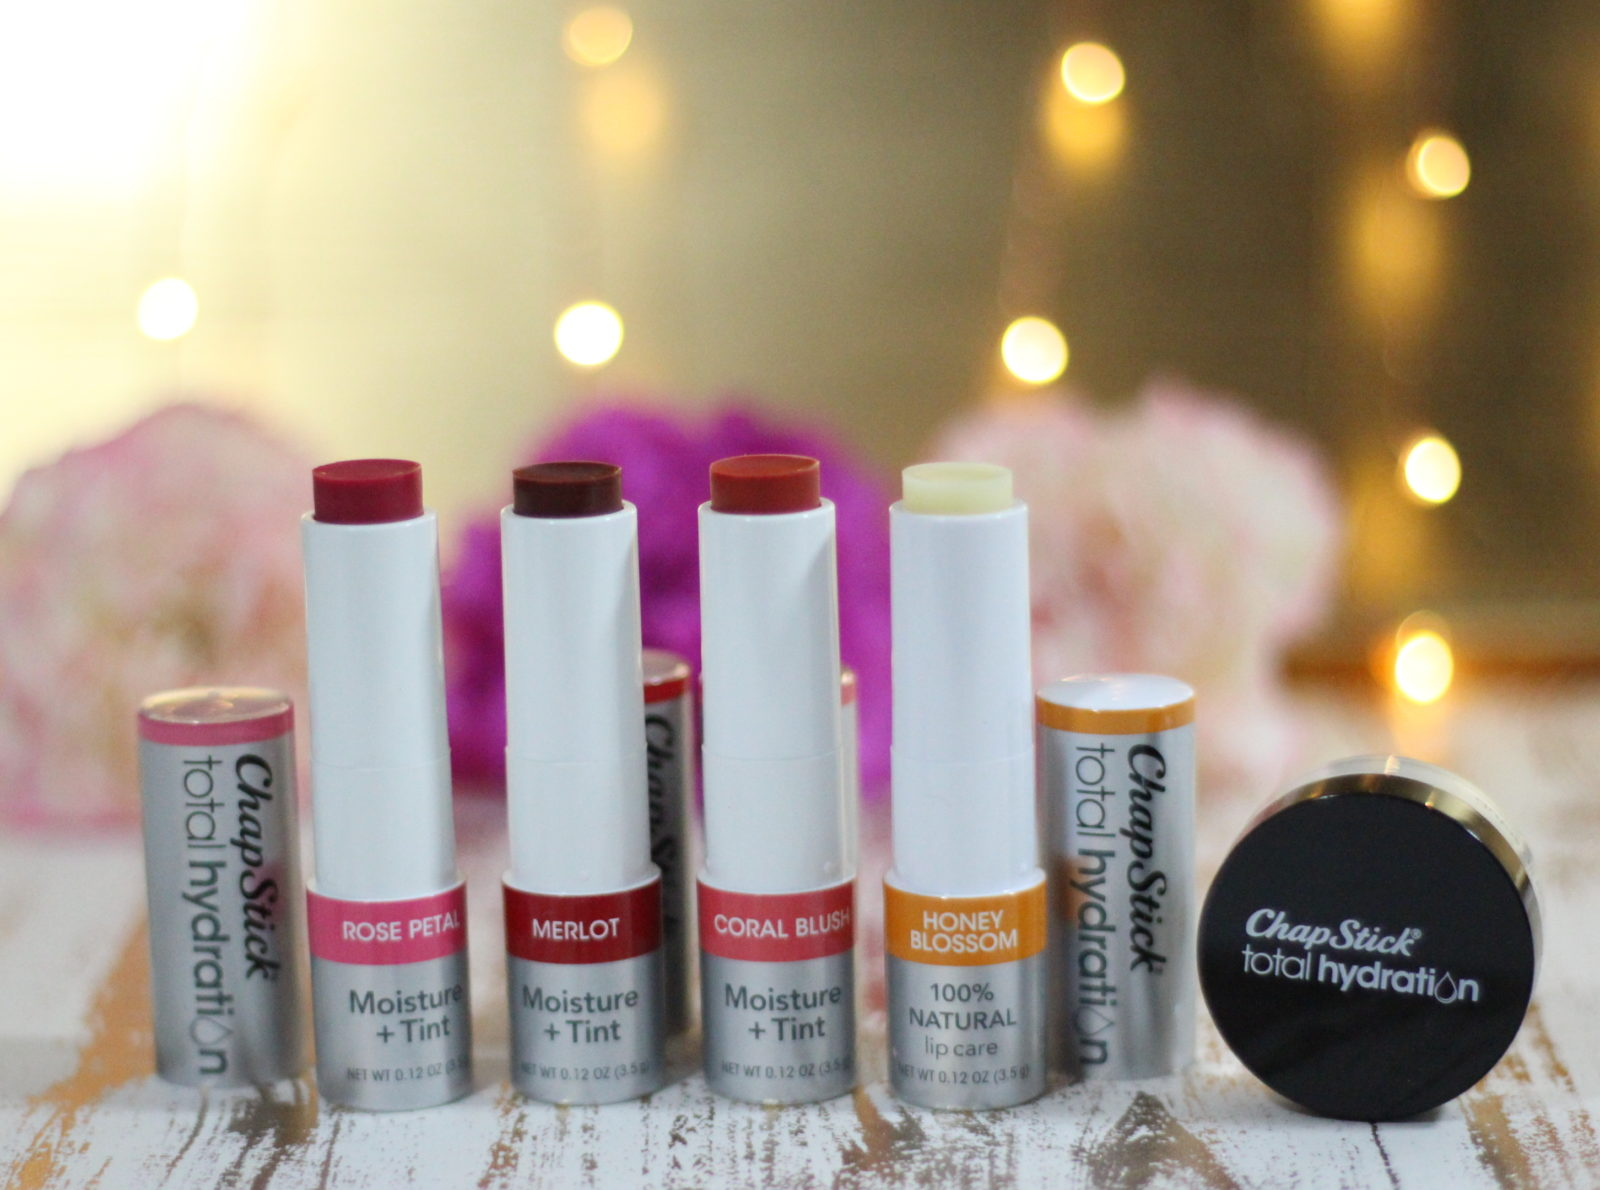 Chapstick Total Hydration Review